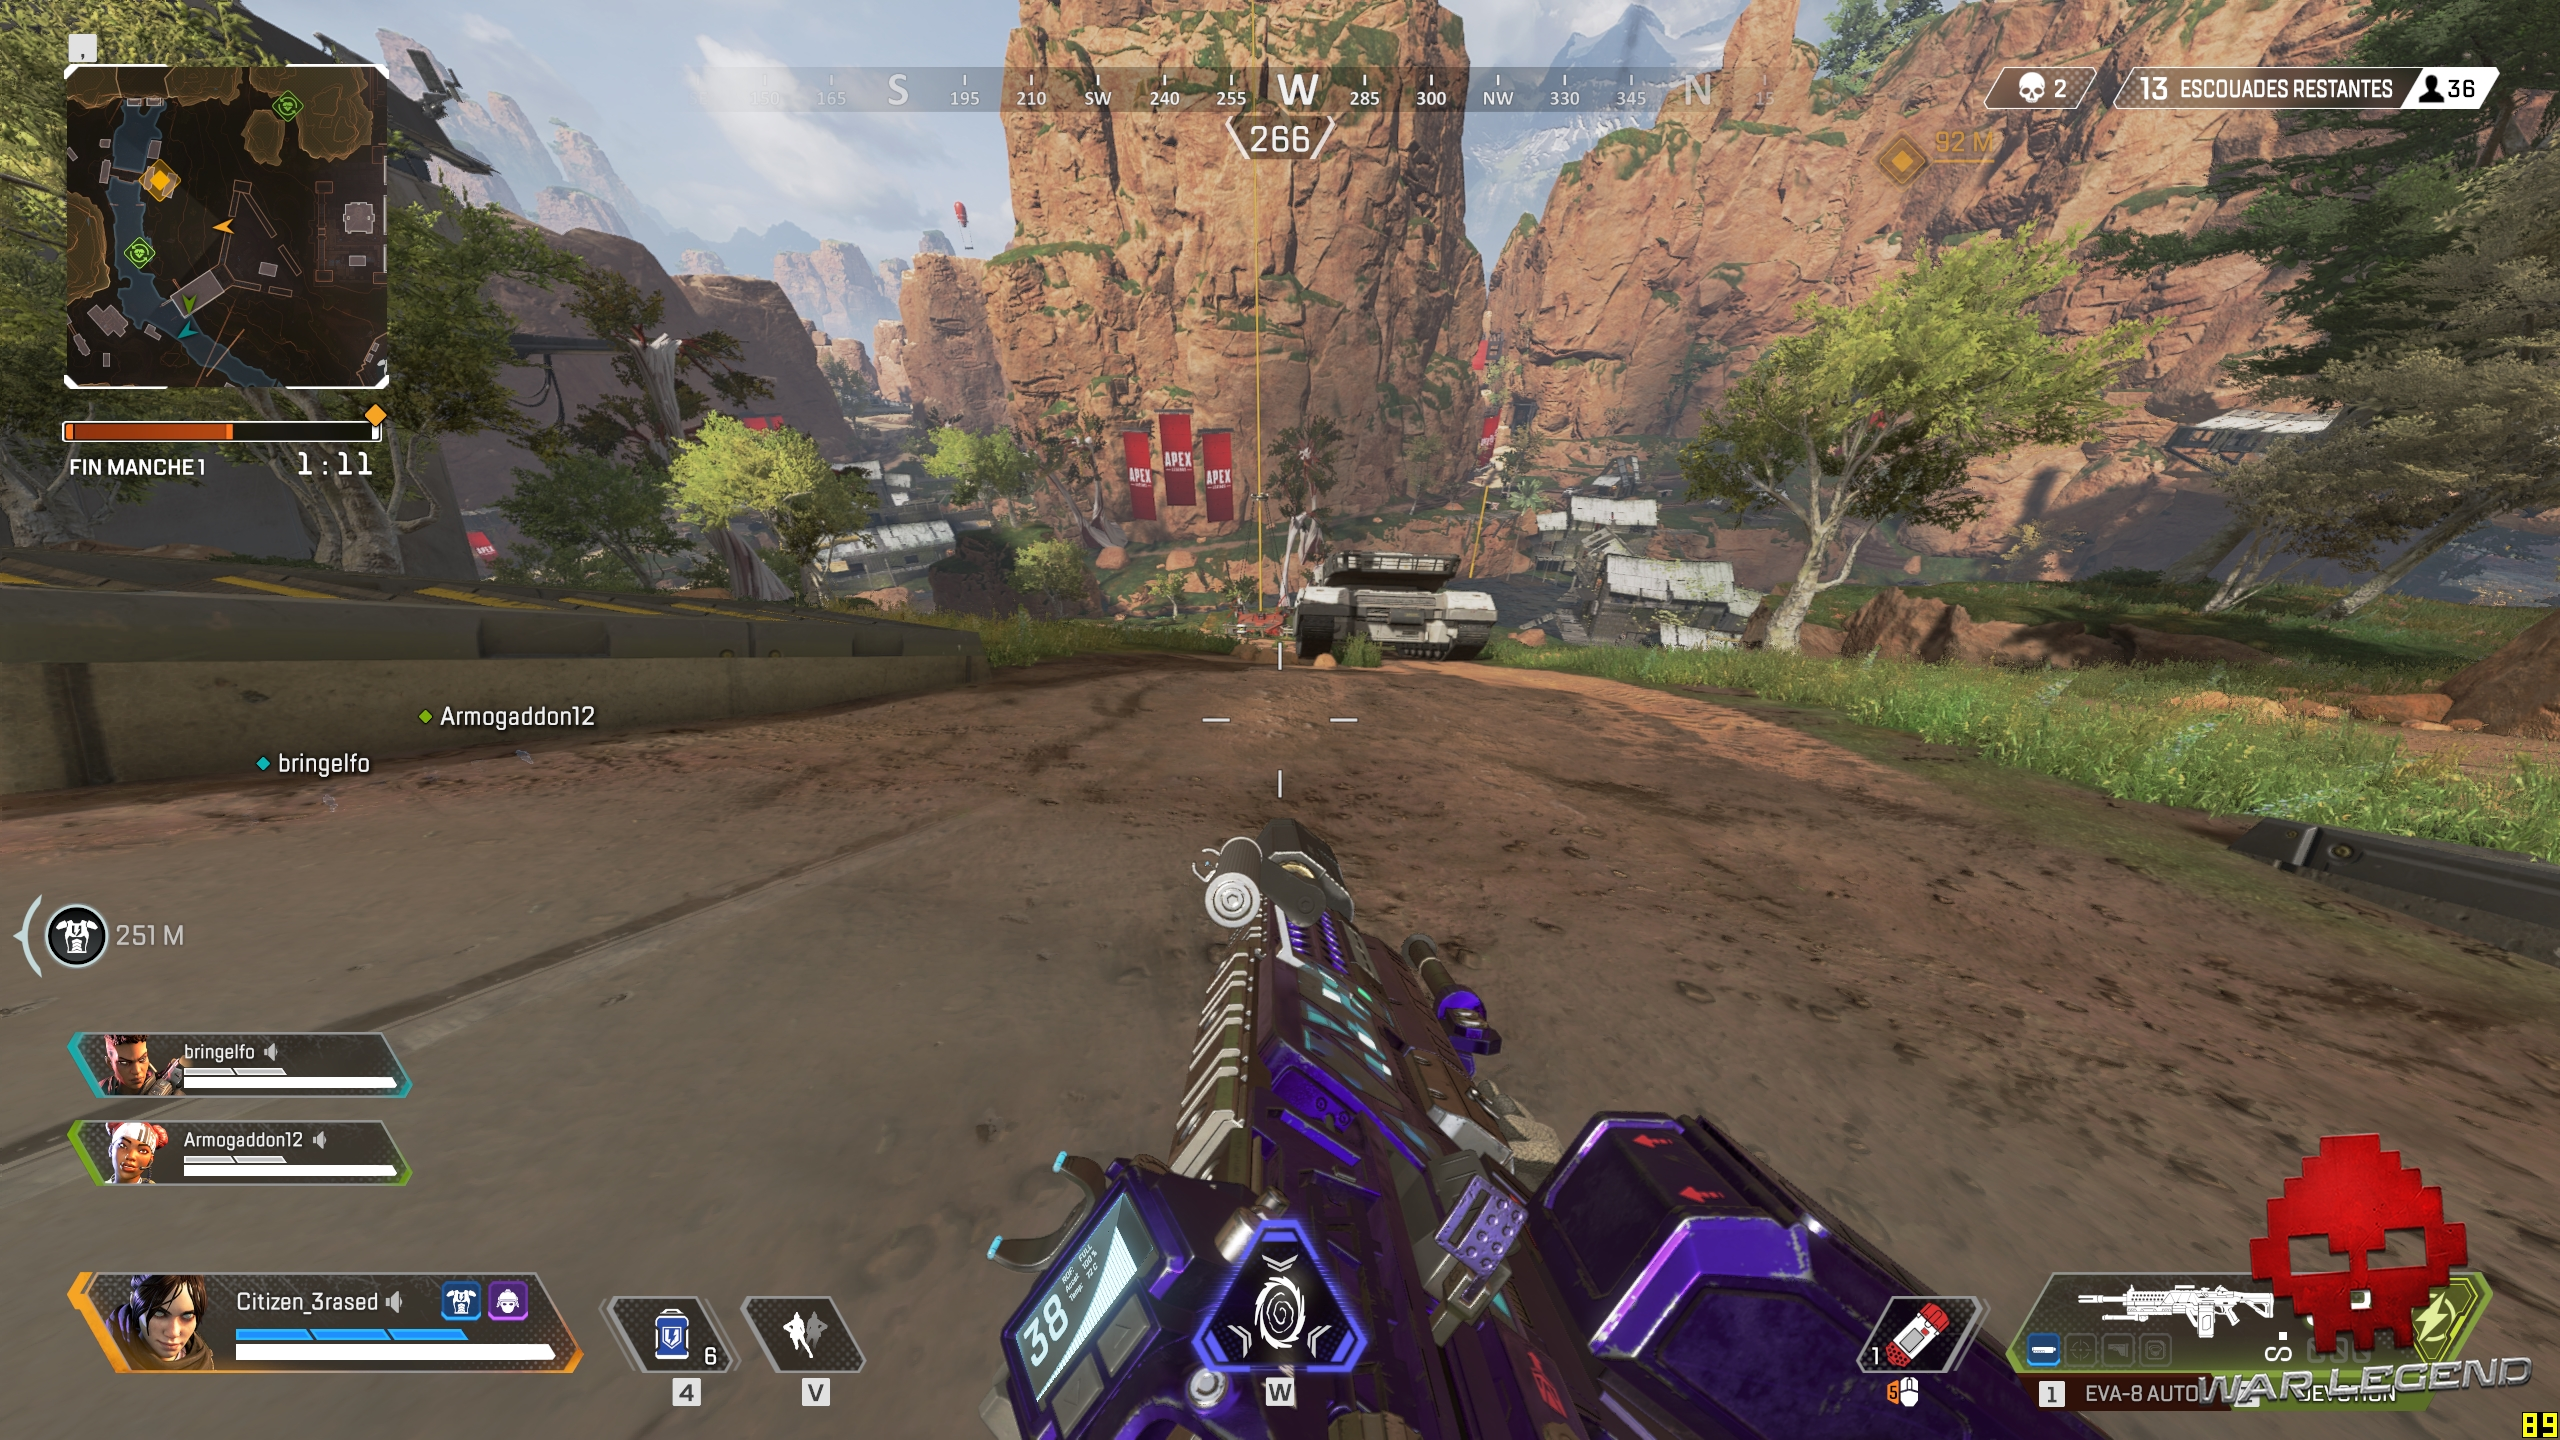 Test Apex Legends - Glissade le long d'une pente